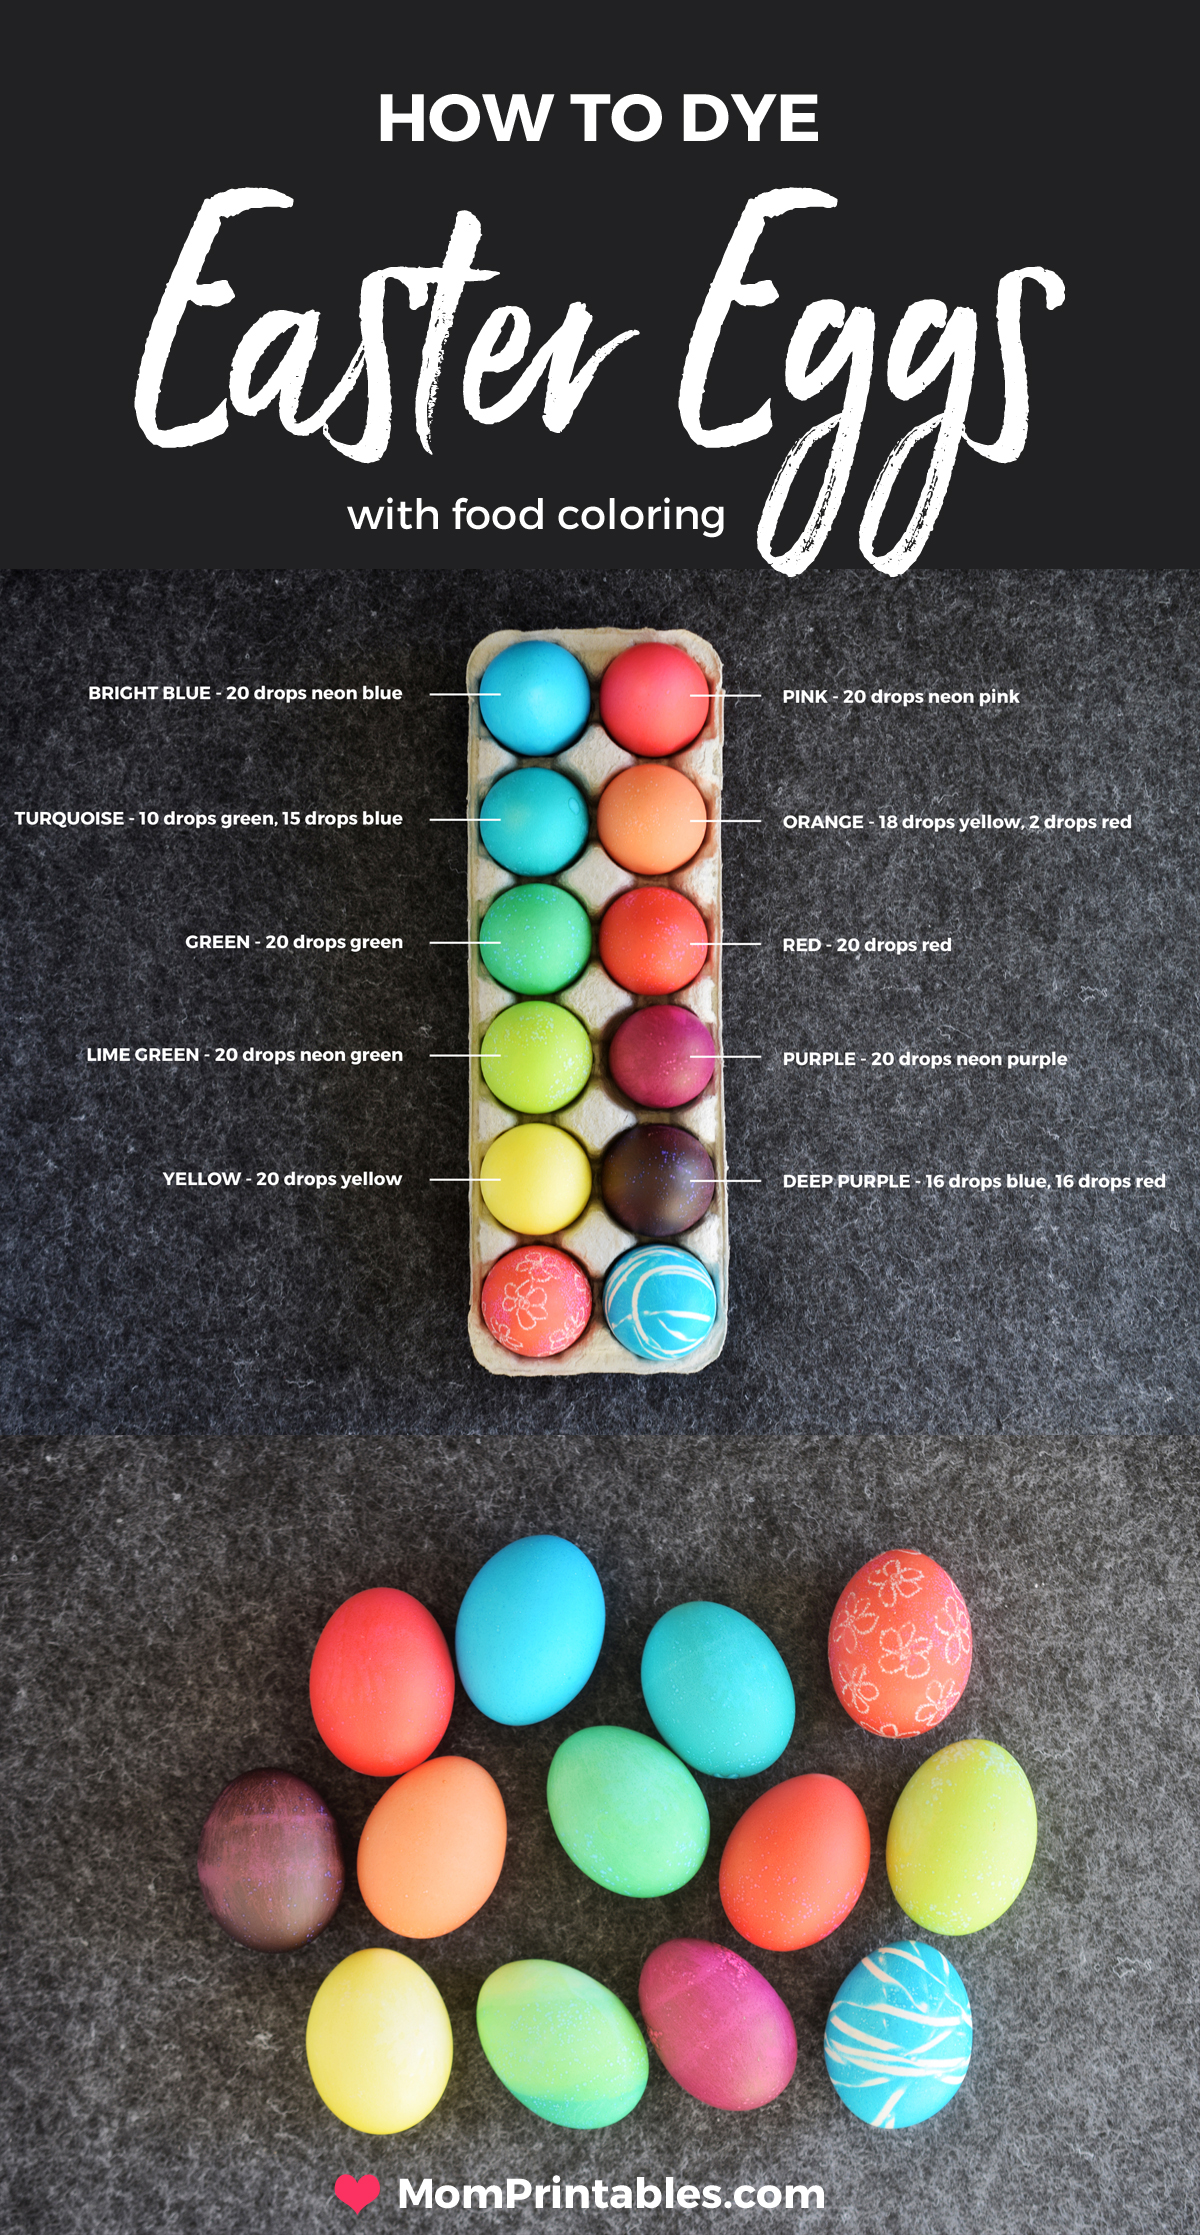 Dye Easter Eggs With Food Coloring | for kids | ideas | Hard boiled eggs | How to make easter eggs | fun easter eggs |  using vinegar | what to do | simple | tutorials | how to make | holidays | rubber bands | dip dyed | colour | water | projects | toddlers | children #easter #eastercrafts #eastereggs #dyedeastereggs